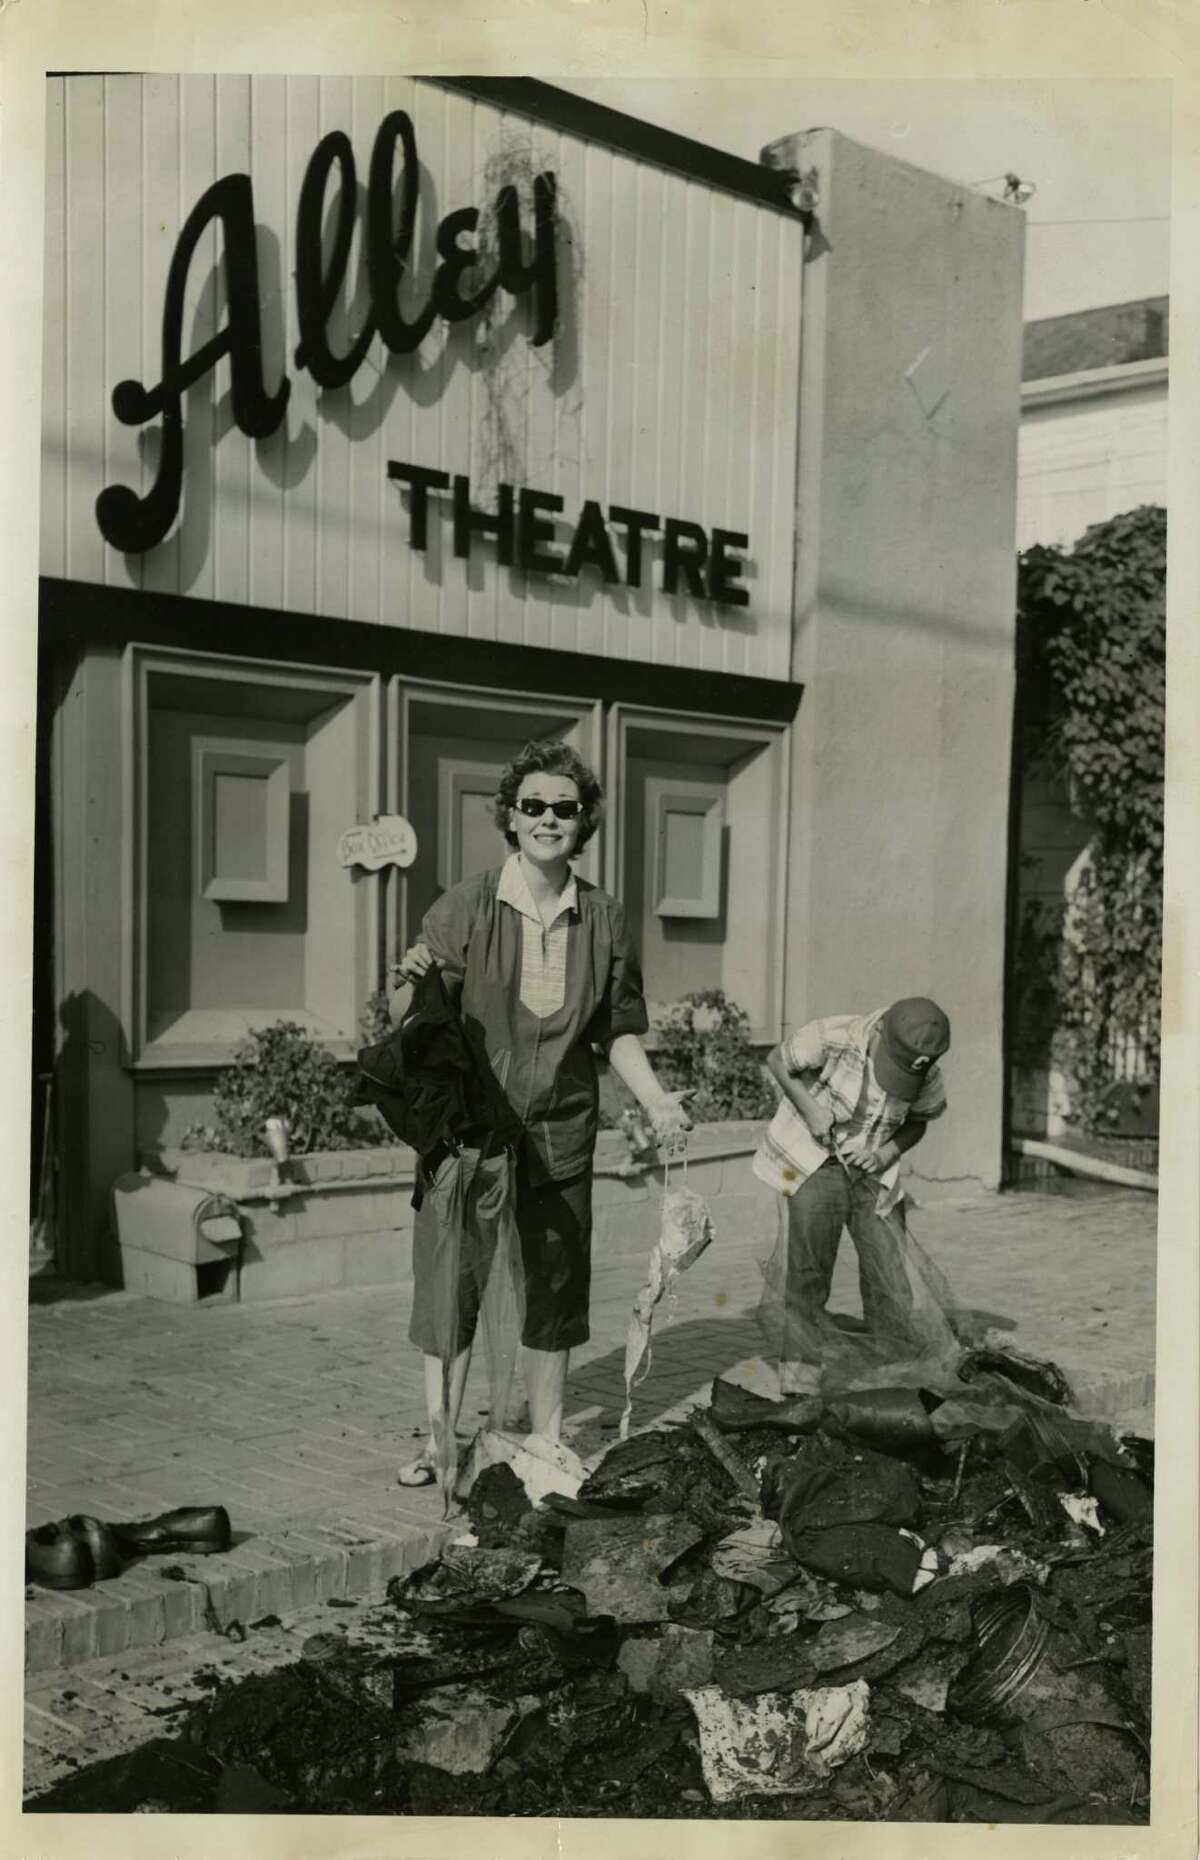 05/19/1956 - Actress Mary Jane Maricle sorts the charred remnants of the Alley Theatre's wardrobe for its production